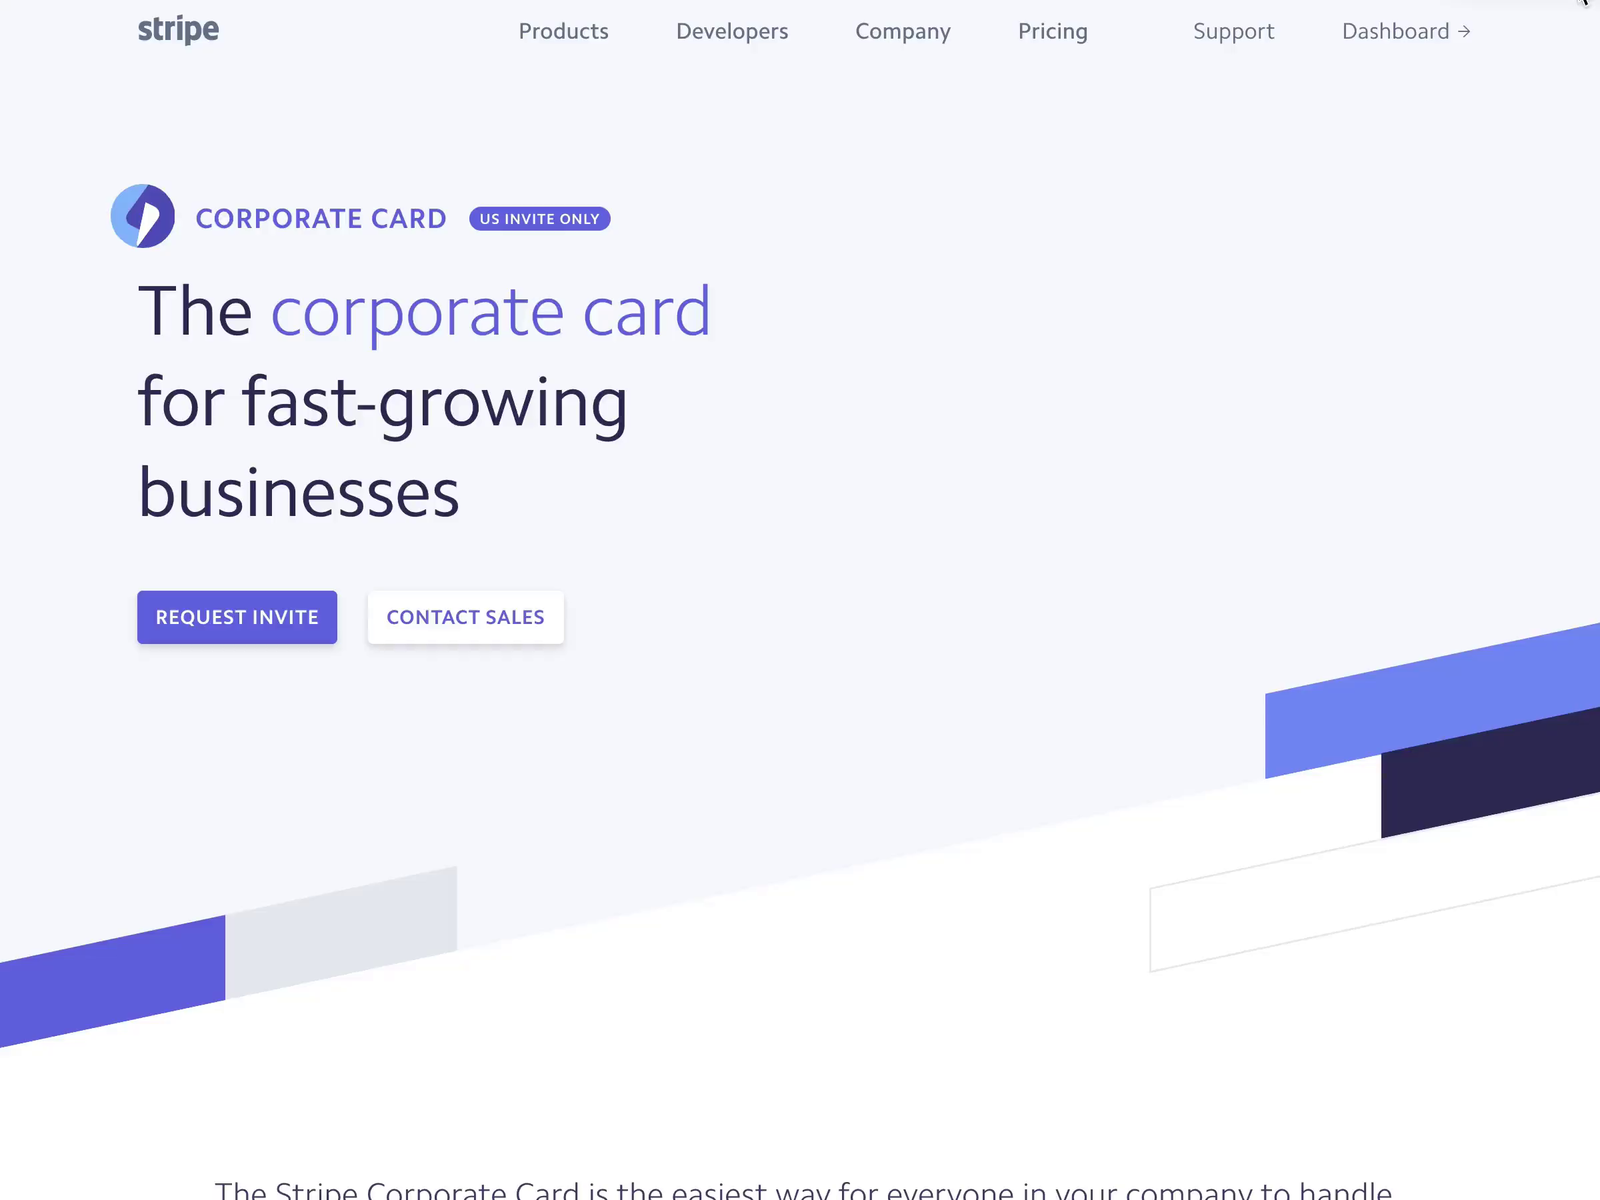 The Stripe Corporate Card by Micaela Ballew for Stripe on